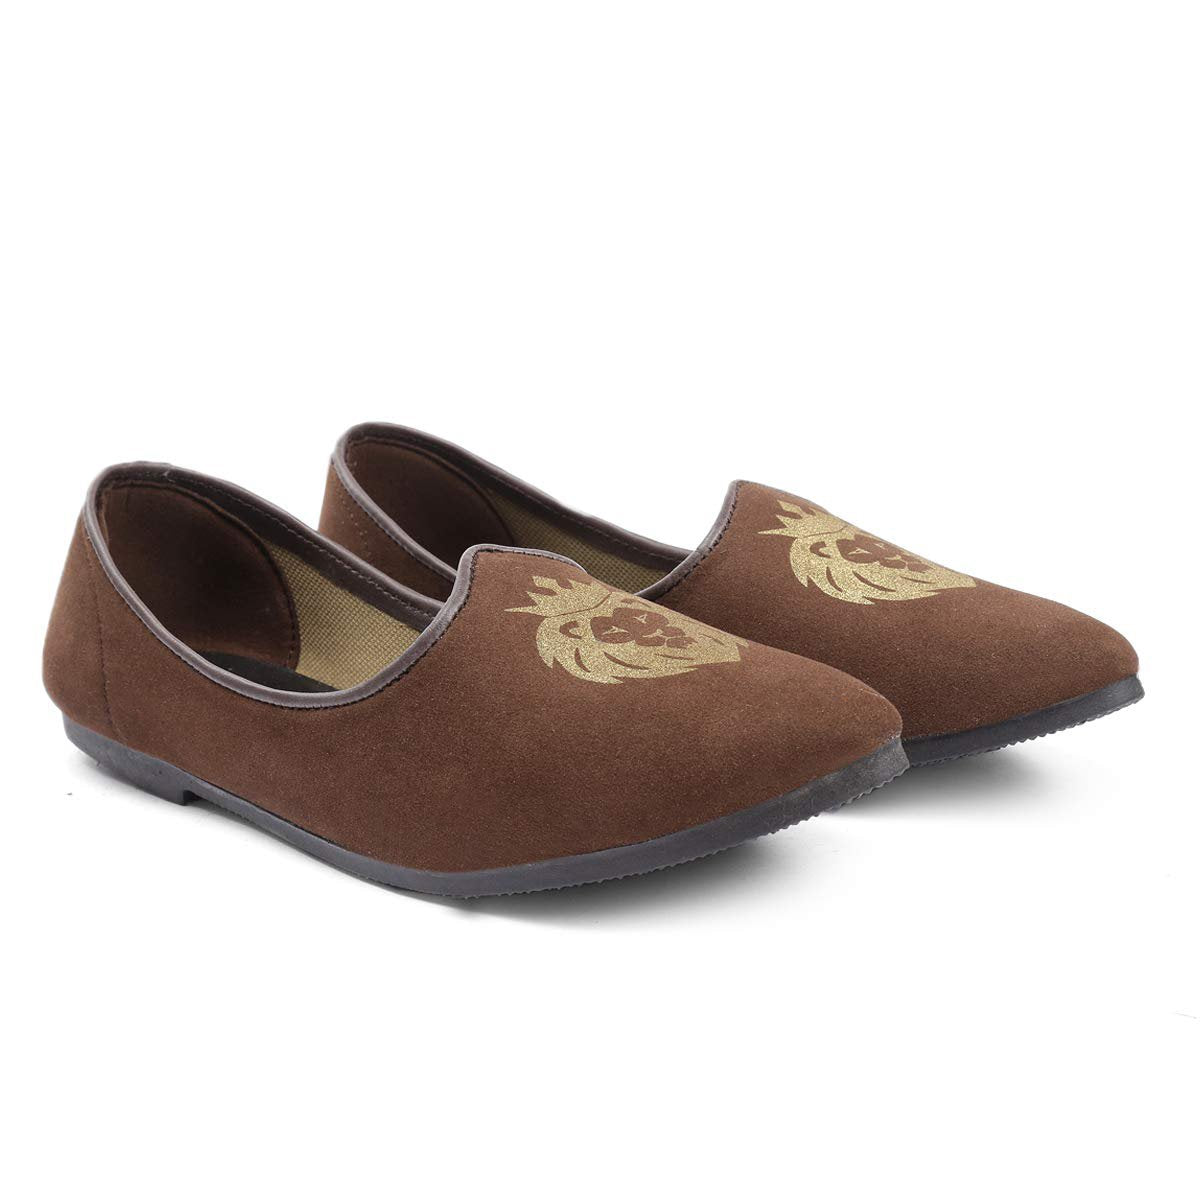 Treemoda Brown Suede Juttis for Men/Boys